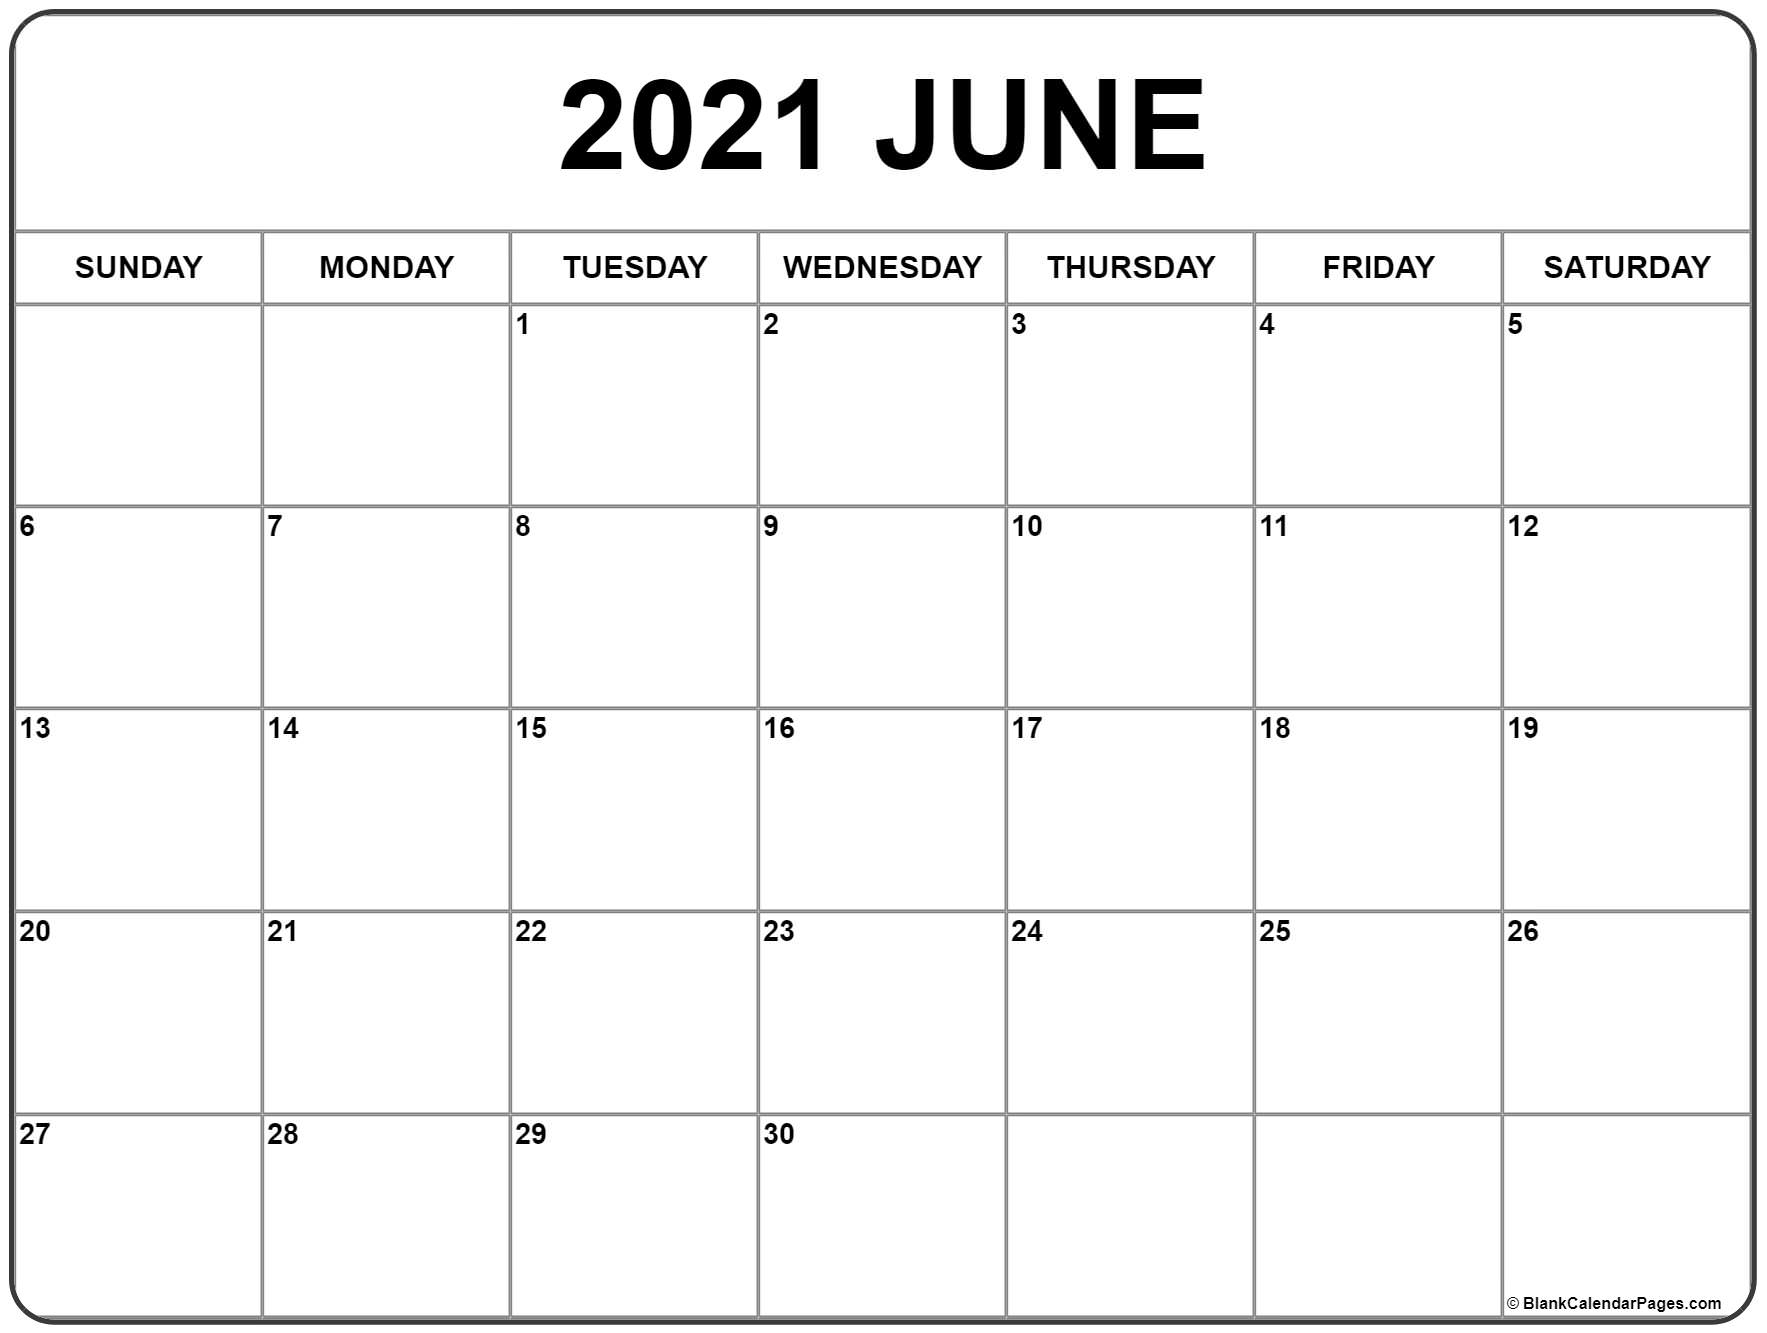 June 2021 Calendar | Free Printable Monthly Calendars